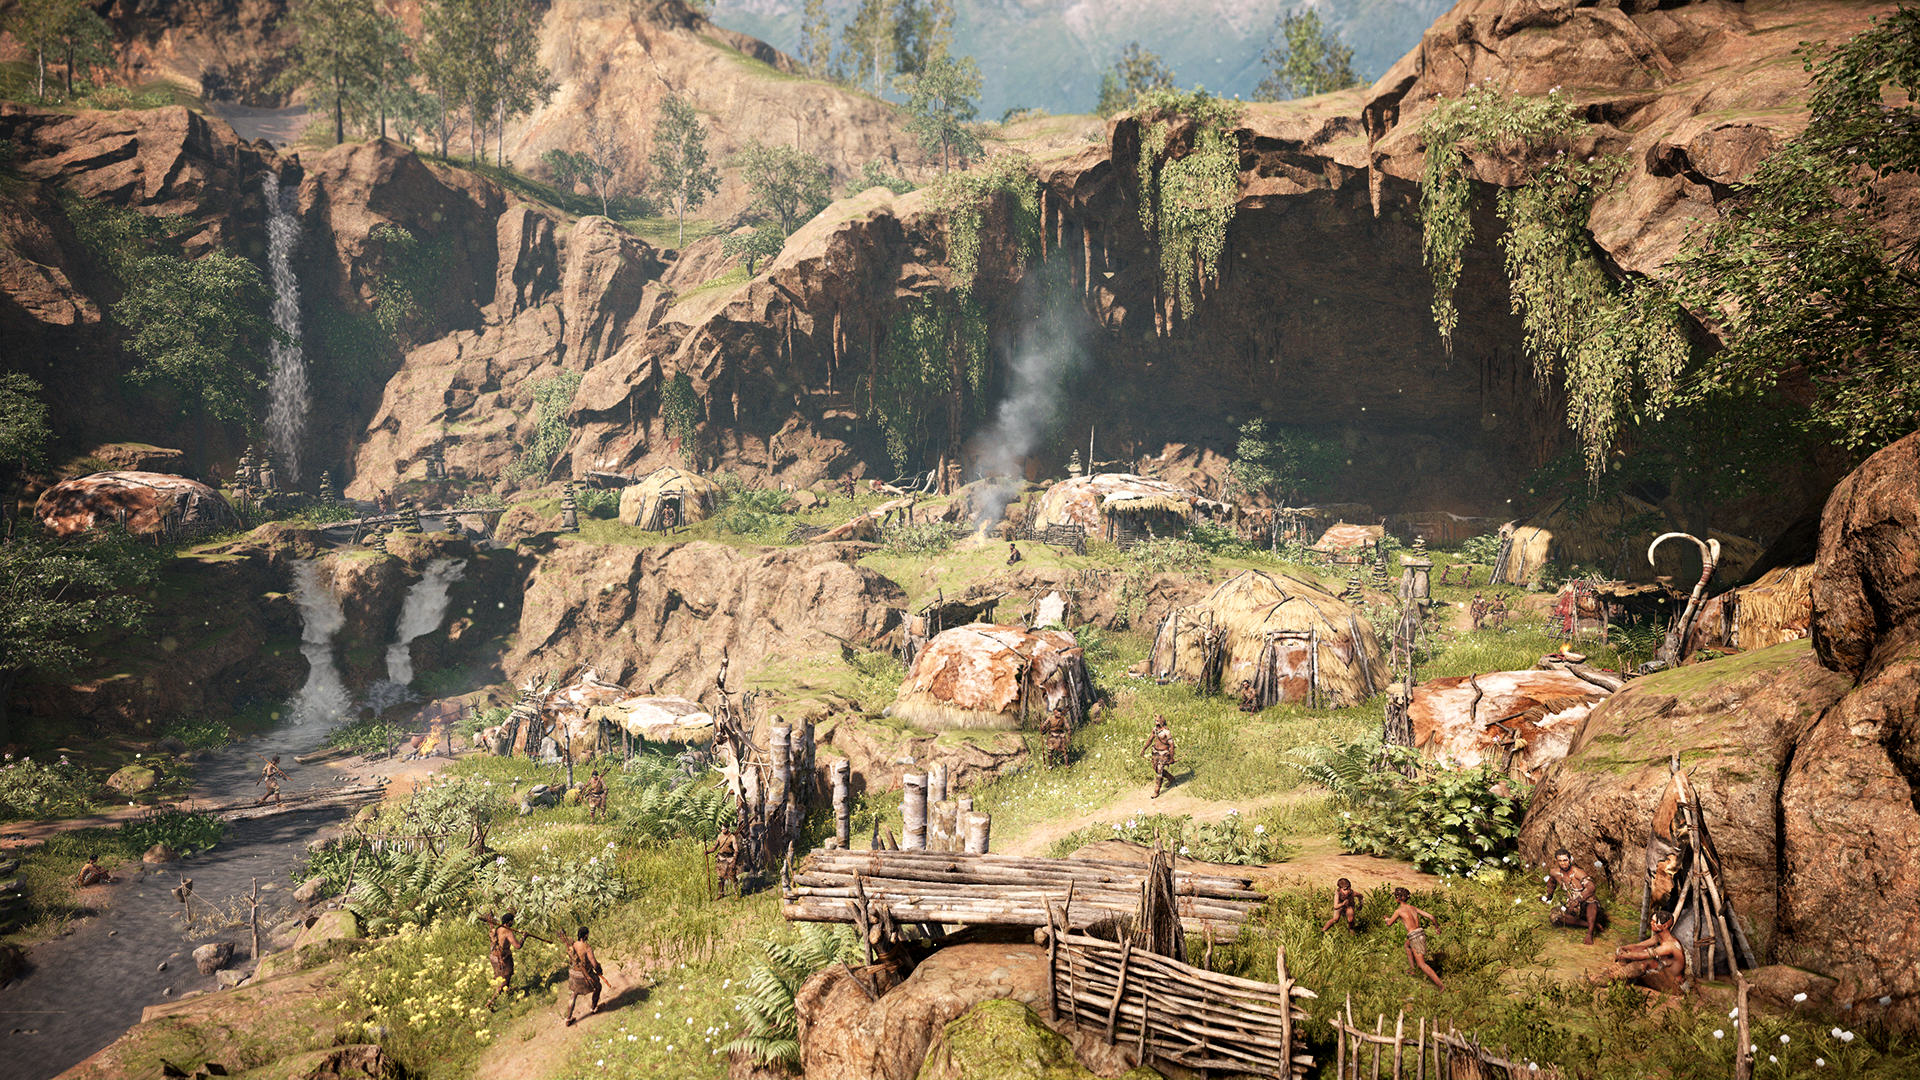 FCP 08 Village Complete Screenshots PREVIEW PR 160126 6pm CET 1453716689 Far Cry Primal Is Shameless Pre Historic Fun, If A Little Shallow